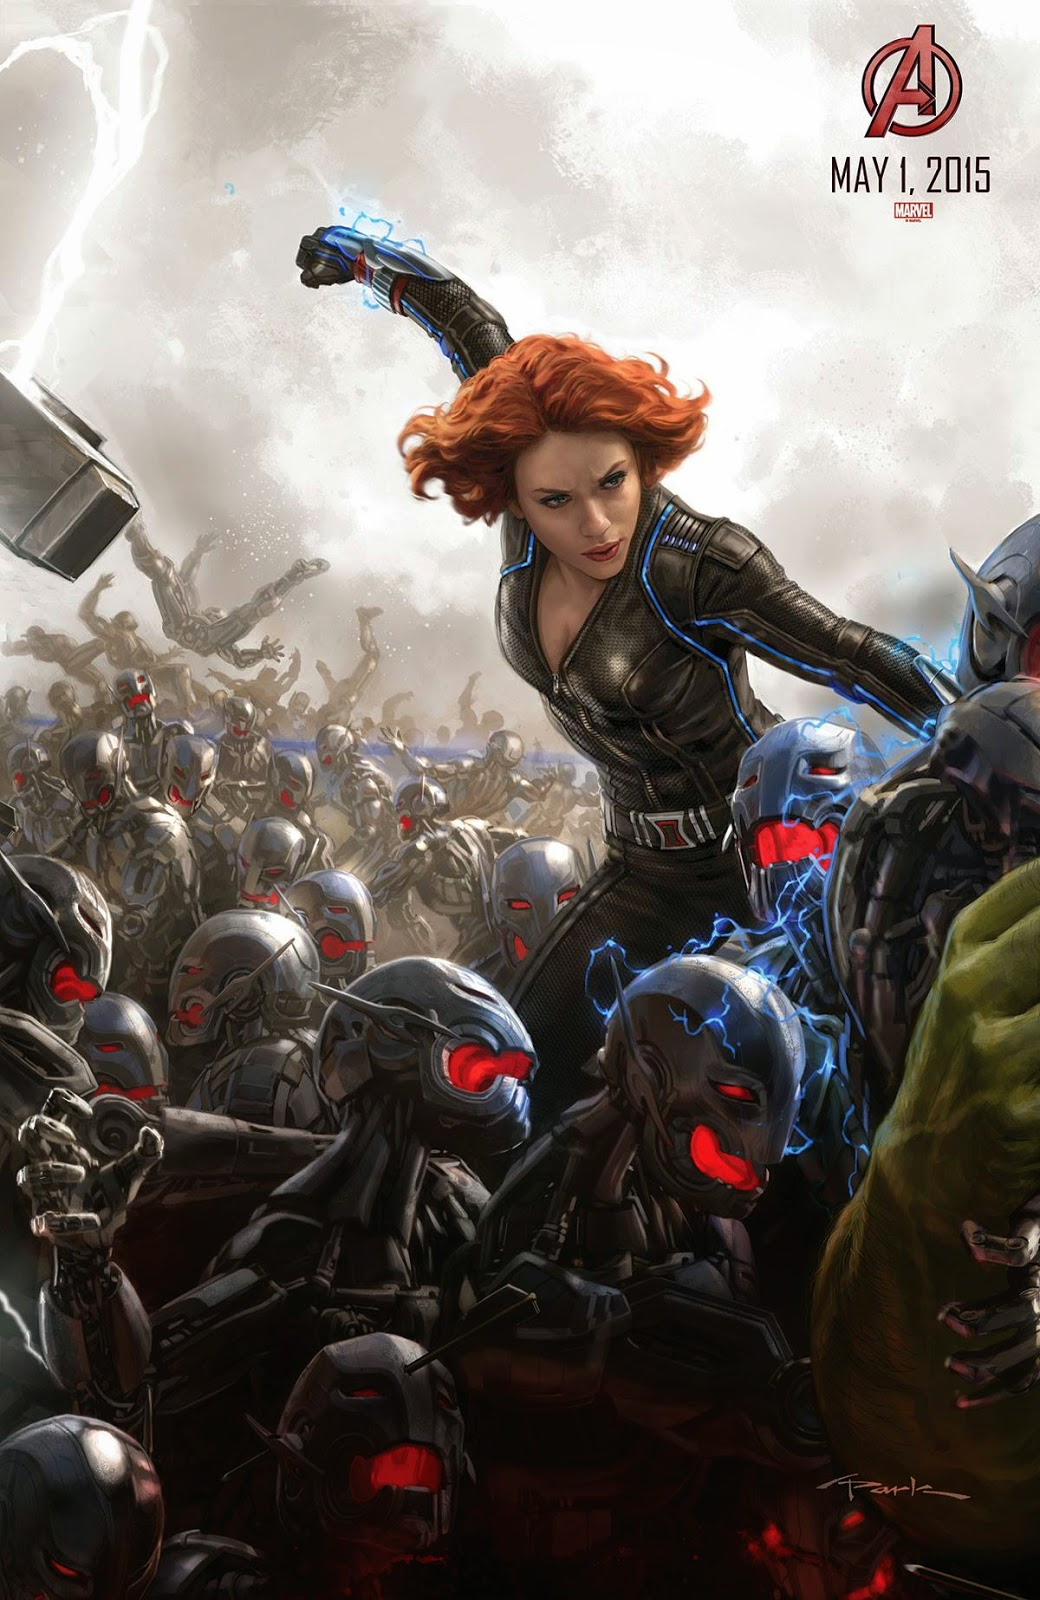 News and rumors on The Black Widow from Avengers Age of Ultron